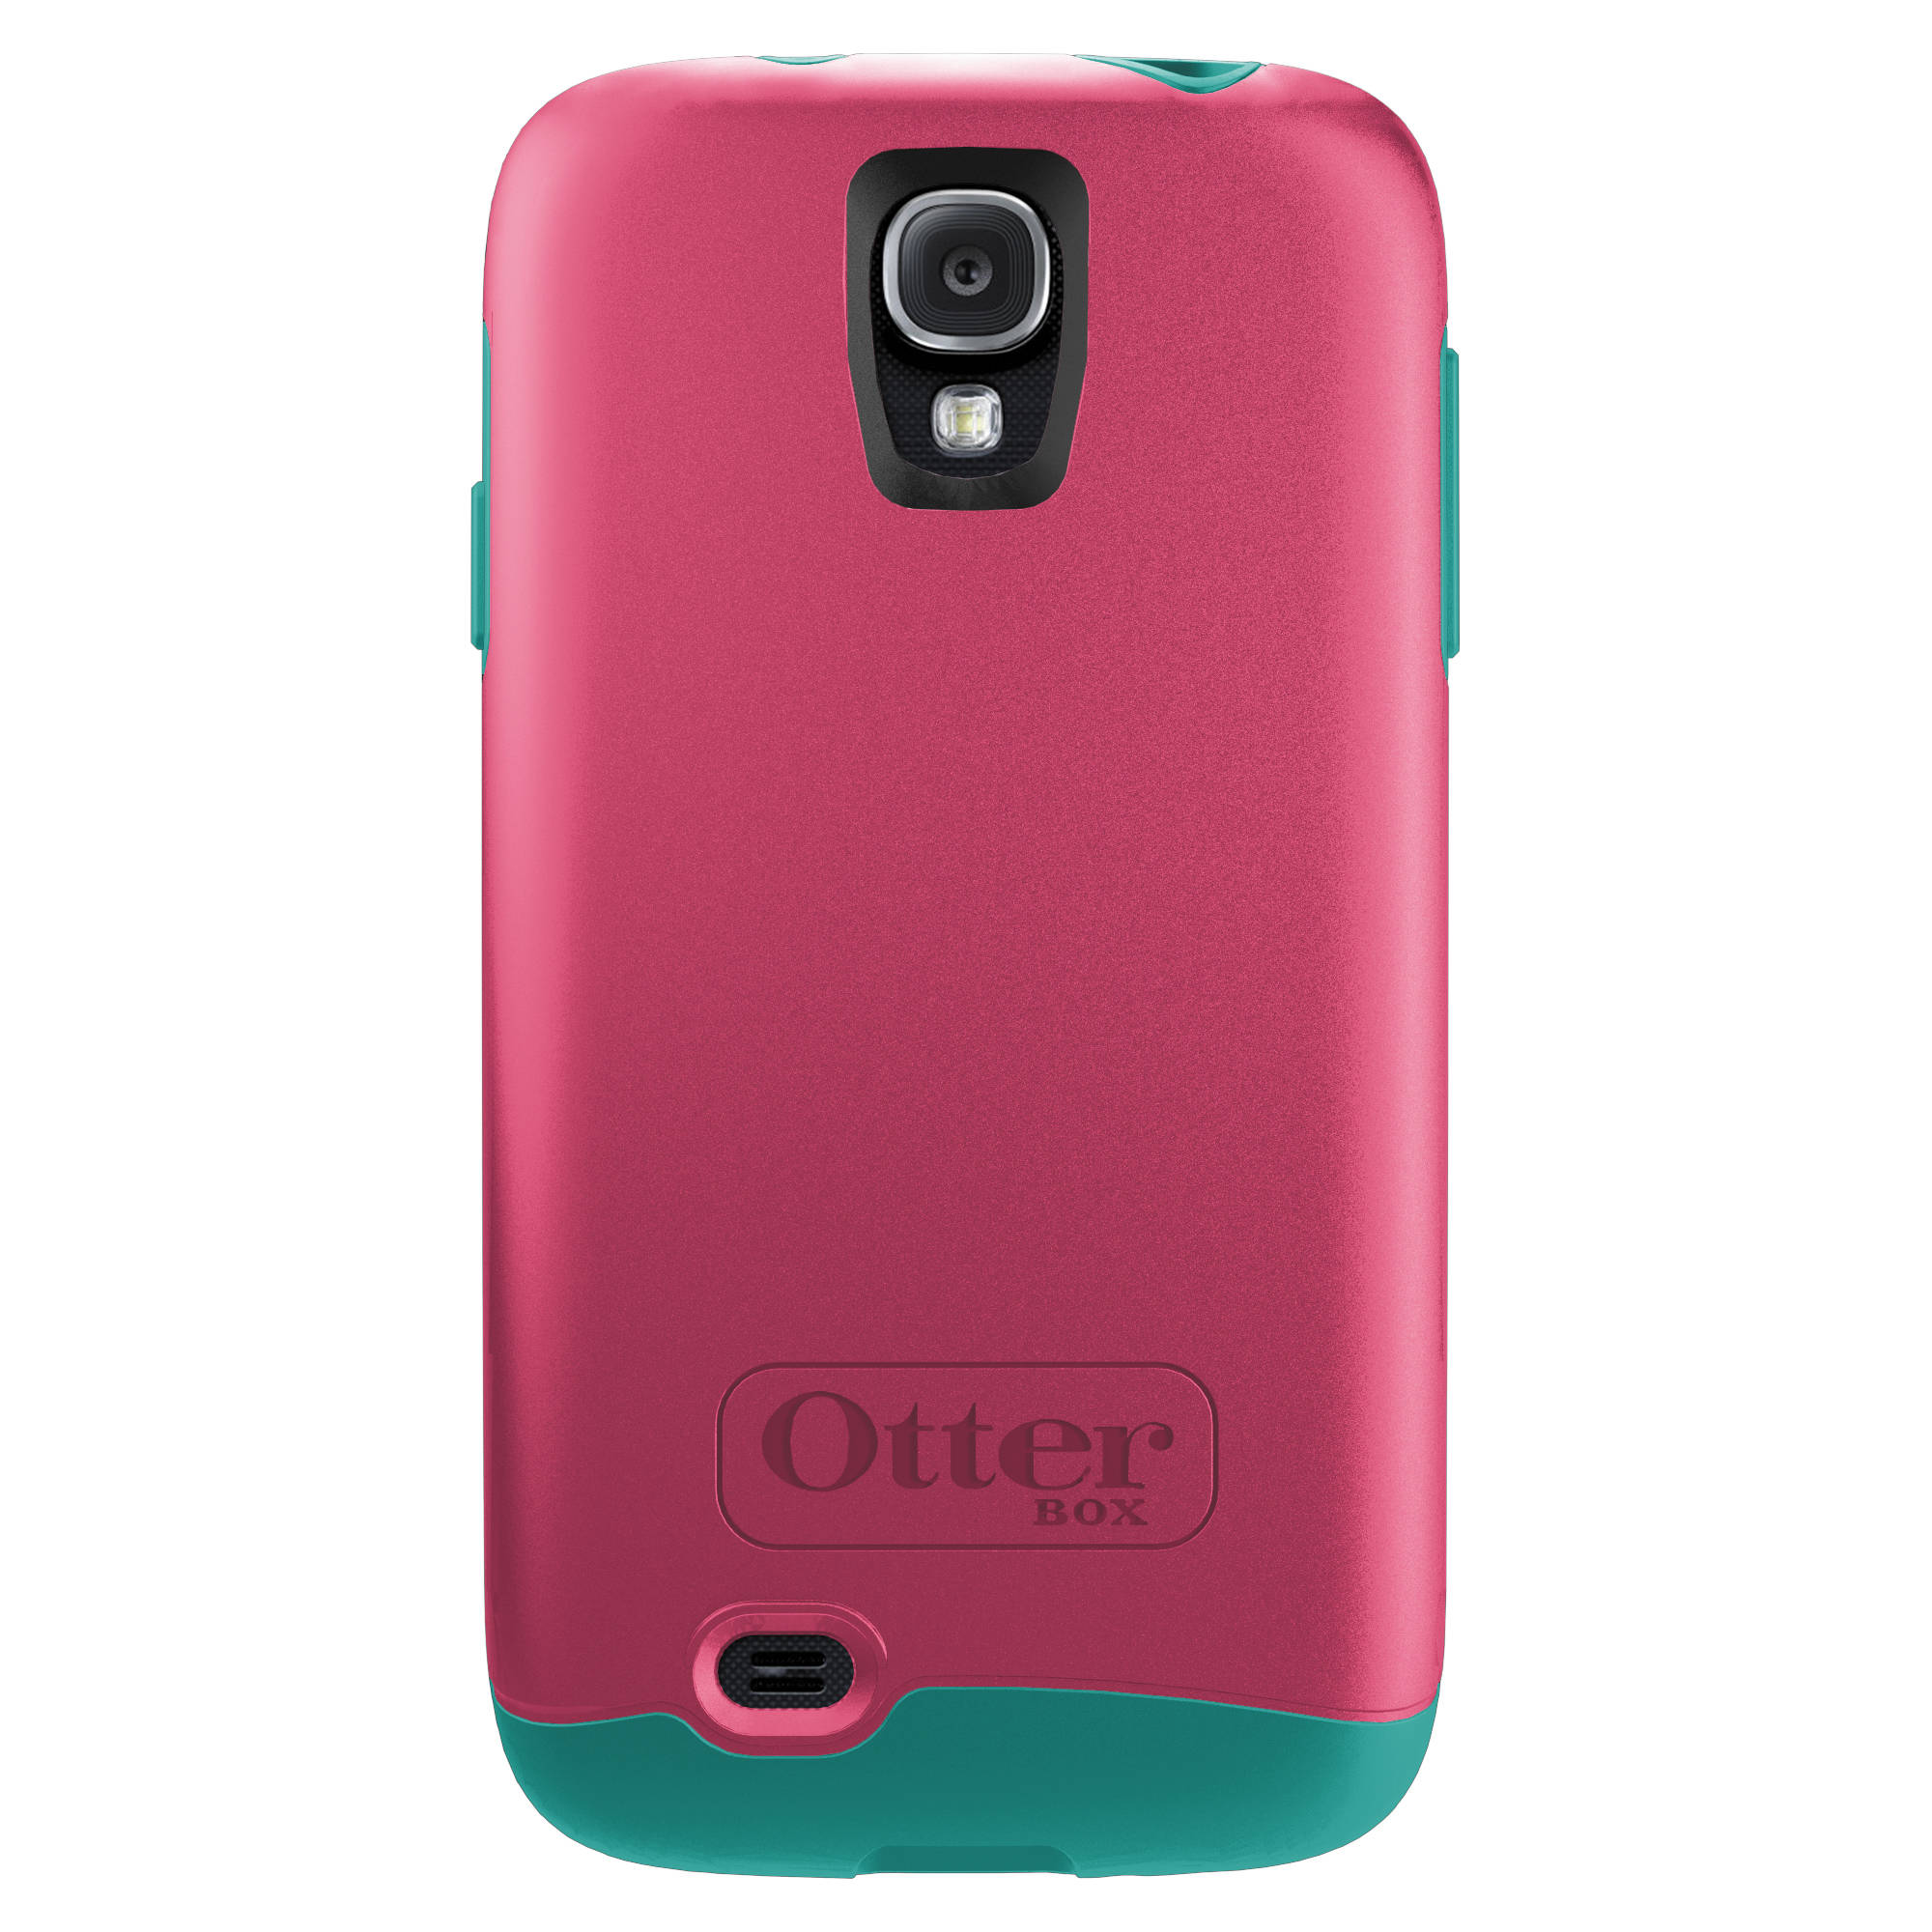 outlet store 7bb3d 6a550 OtterBox Symmetry Series Case for Galaxy S4 (Teal Rose) 77-37351